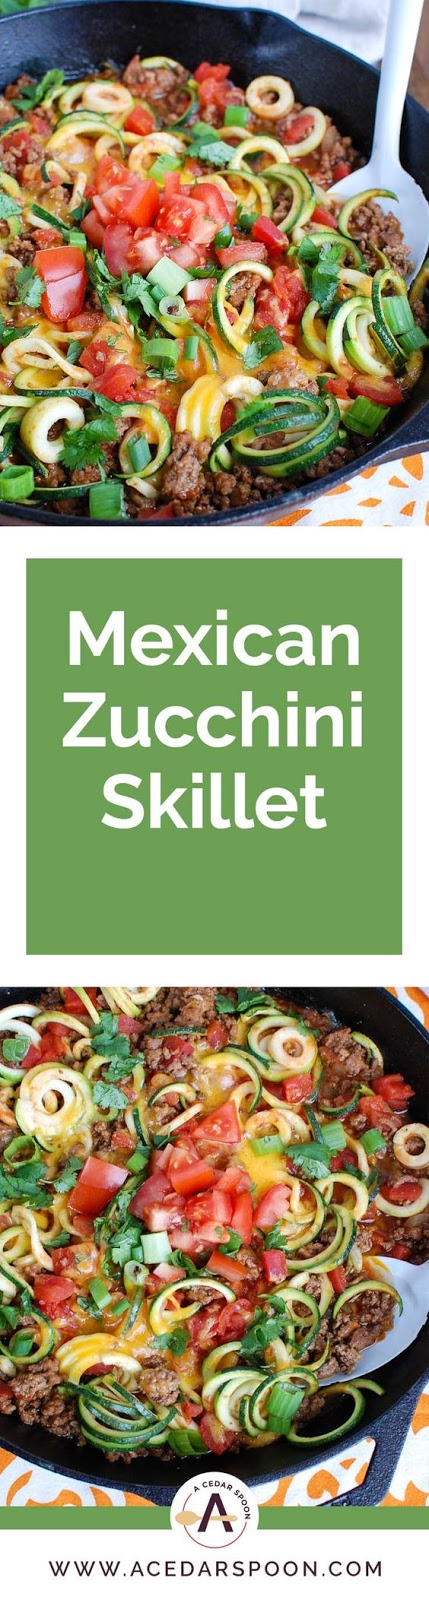 This easy Mexican Zucchini is made in one skillet and is sure to be a family favorite. You will love your favorite taco ingredients mixed with light zucchini noodles creating a low-carb,  #beef #zucchini